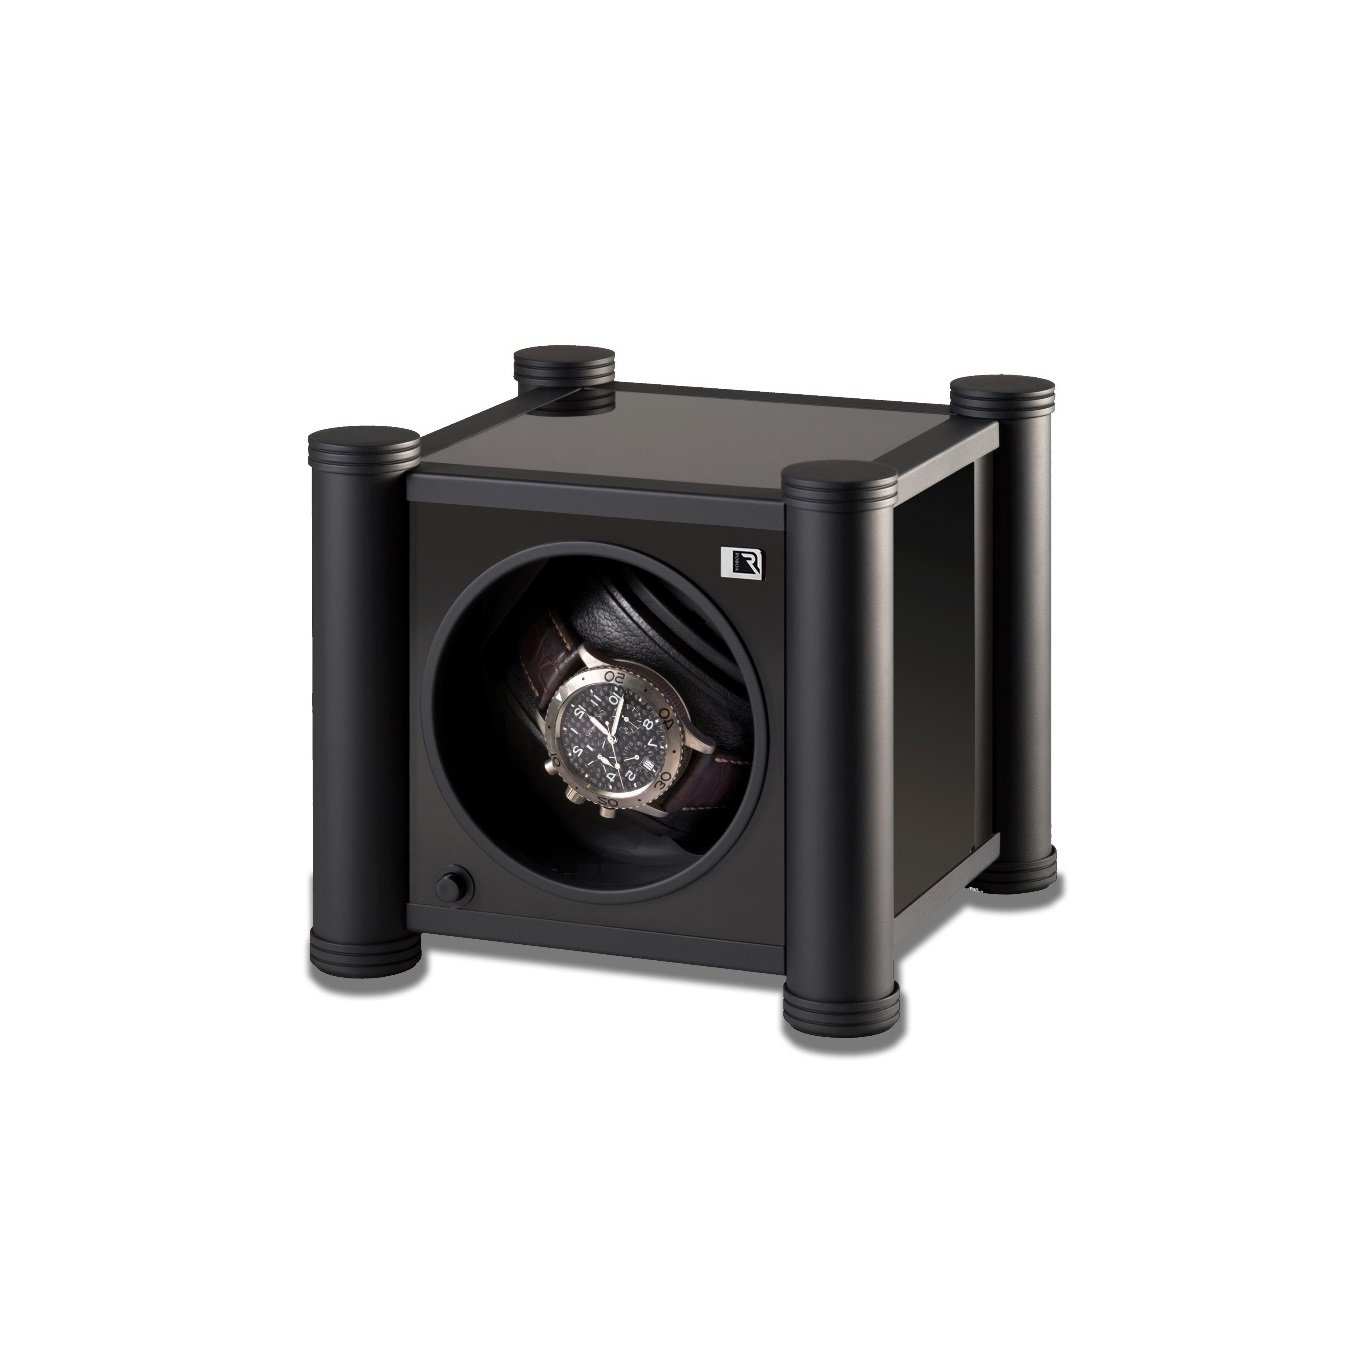 WATCH WINDER 1 BOX SRW6001B of The ROBOX Brand - Perfect choice for you